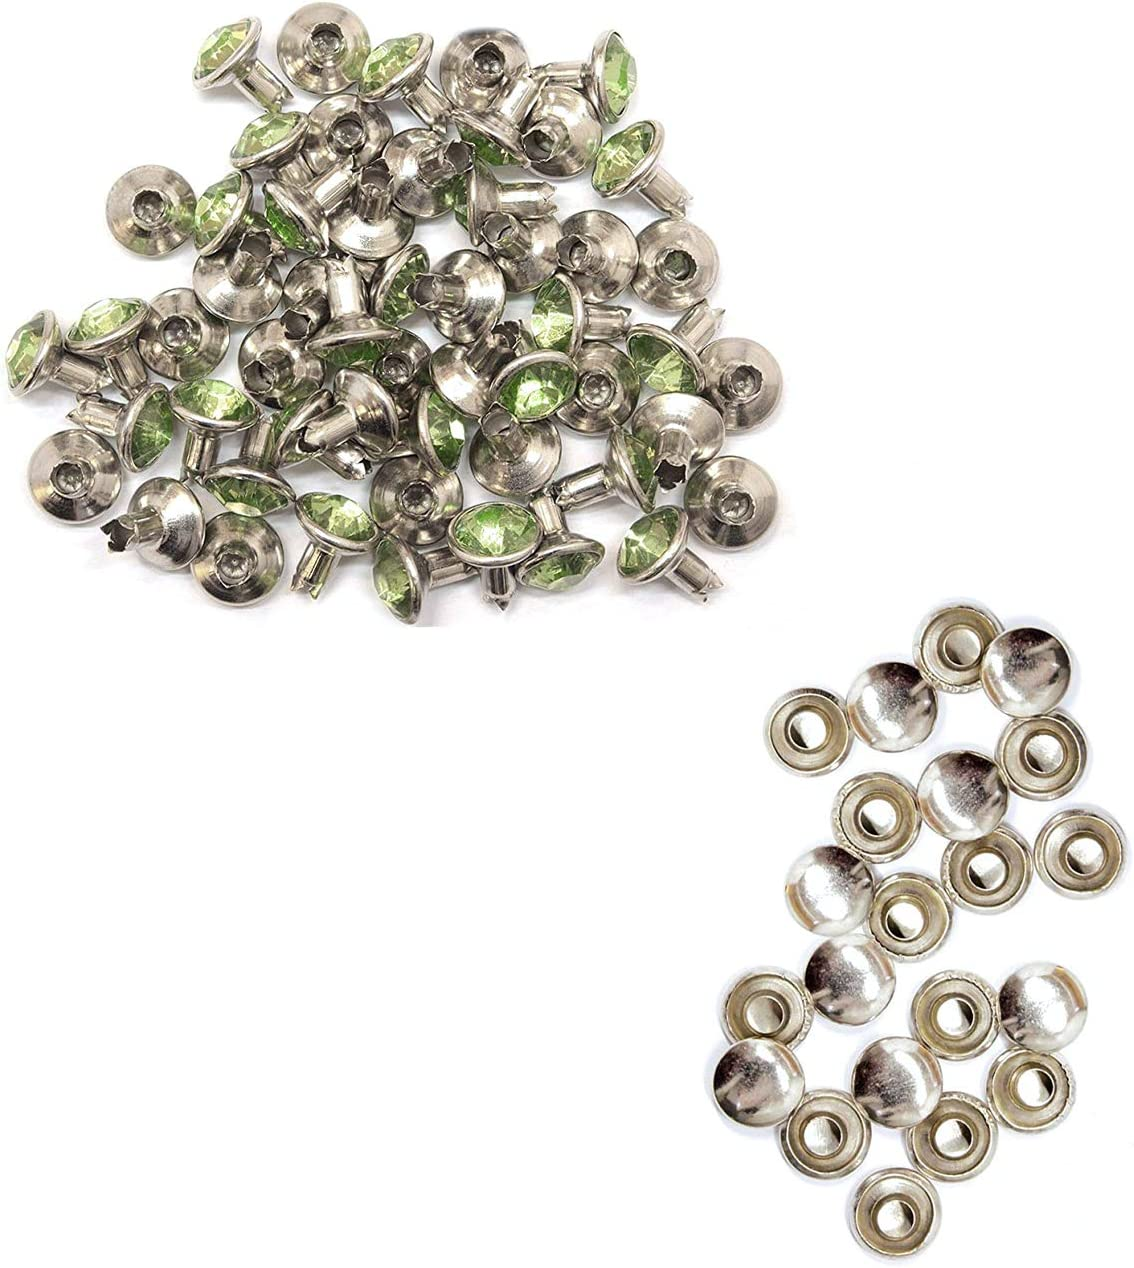 Perfect for Belts Trimming Shop 8mm Diamante Rivet Studs for Leather Crafts with Apple Green Coloured Acrylic Rhinestones Pack of 50 Bags or Dog Collars